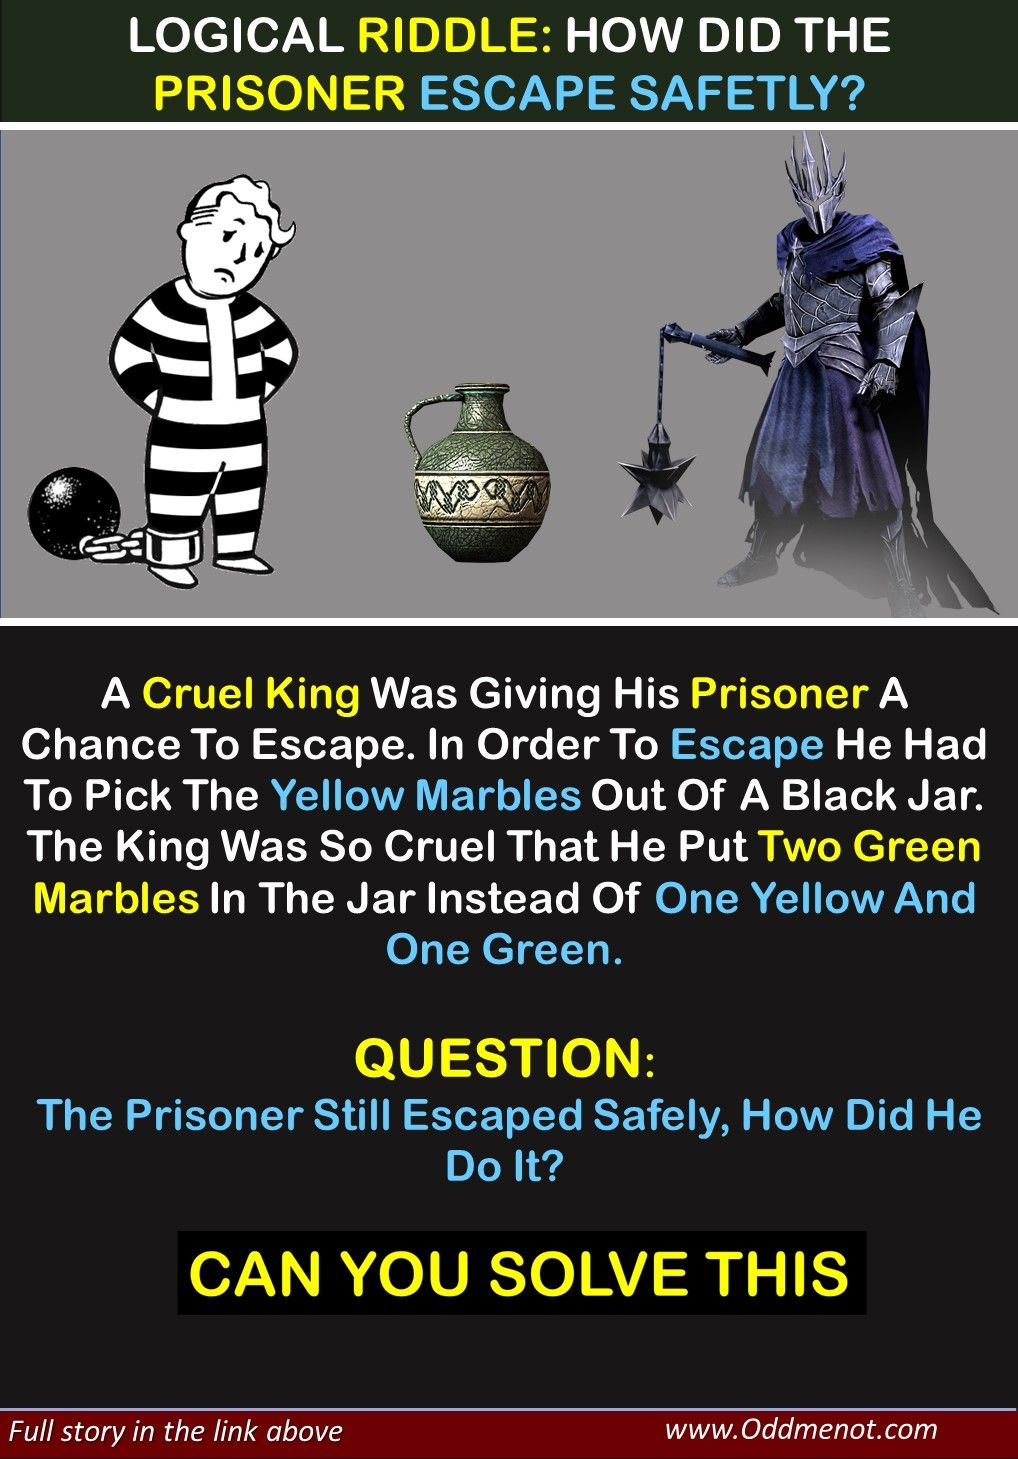 Think Logically To Solve This Riddle A Cruel King Was Giving His Prisoner A Chance To Escape In Order To Escape He Had To Pick T Riddles Prison Story Riddles